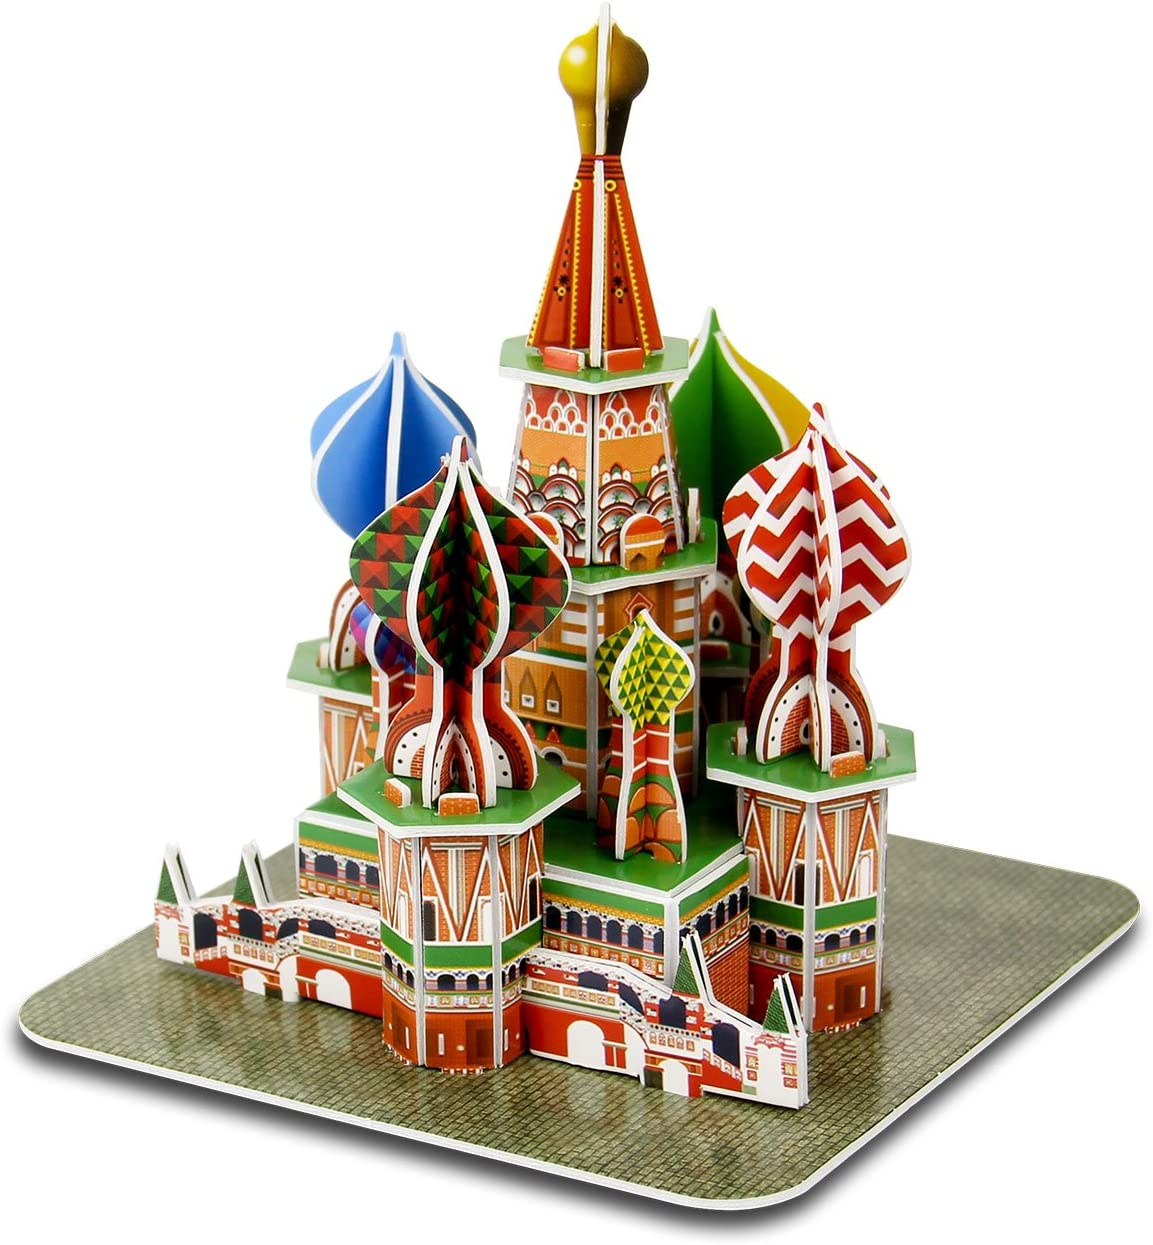 Famous Building Large Puzzle Game Toys Gift Basil Cathedral Jigsaw Puzzles 1000 Pieces for Adults Kids